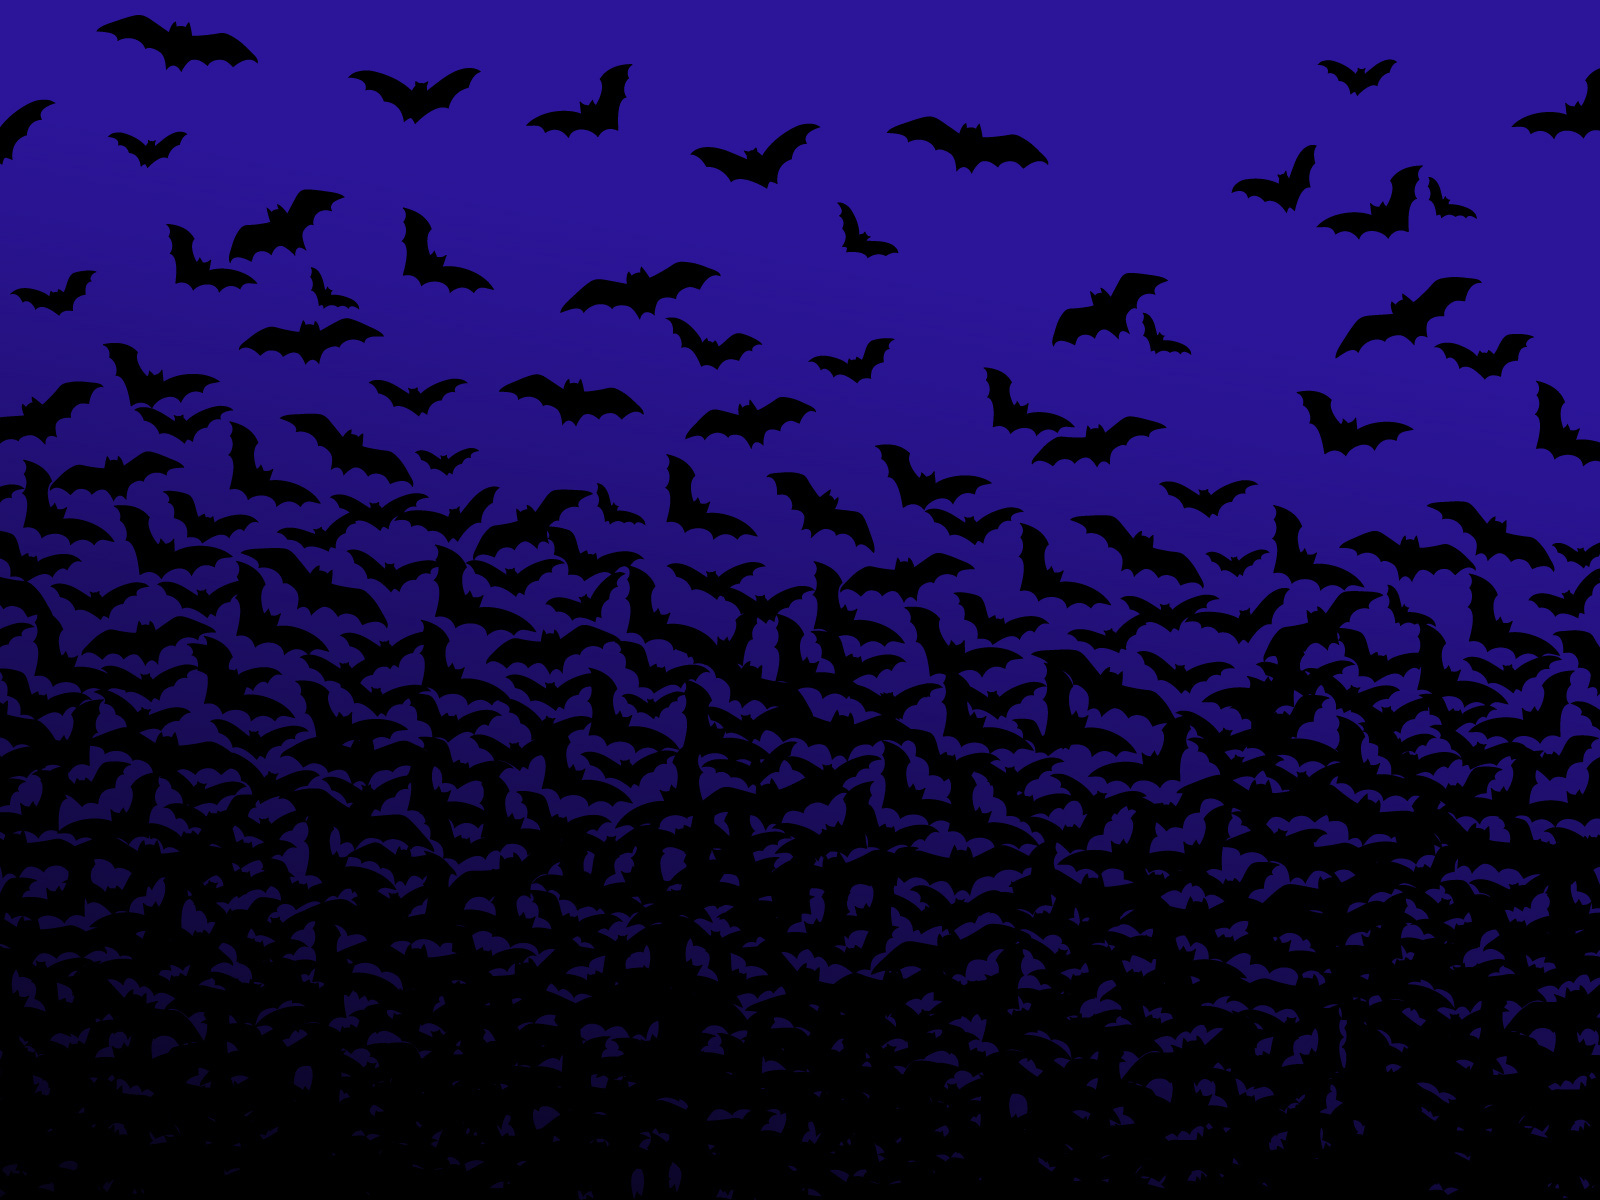 Bats Are Good   Halloween Wallpaper 526588 1600x1200